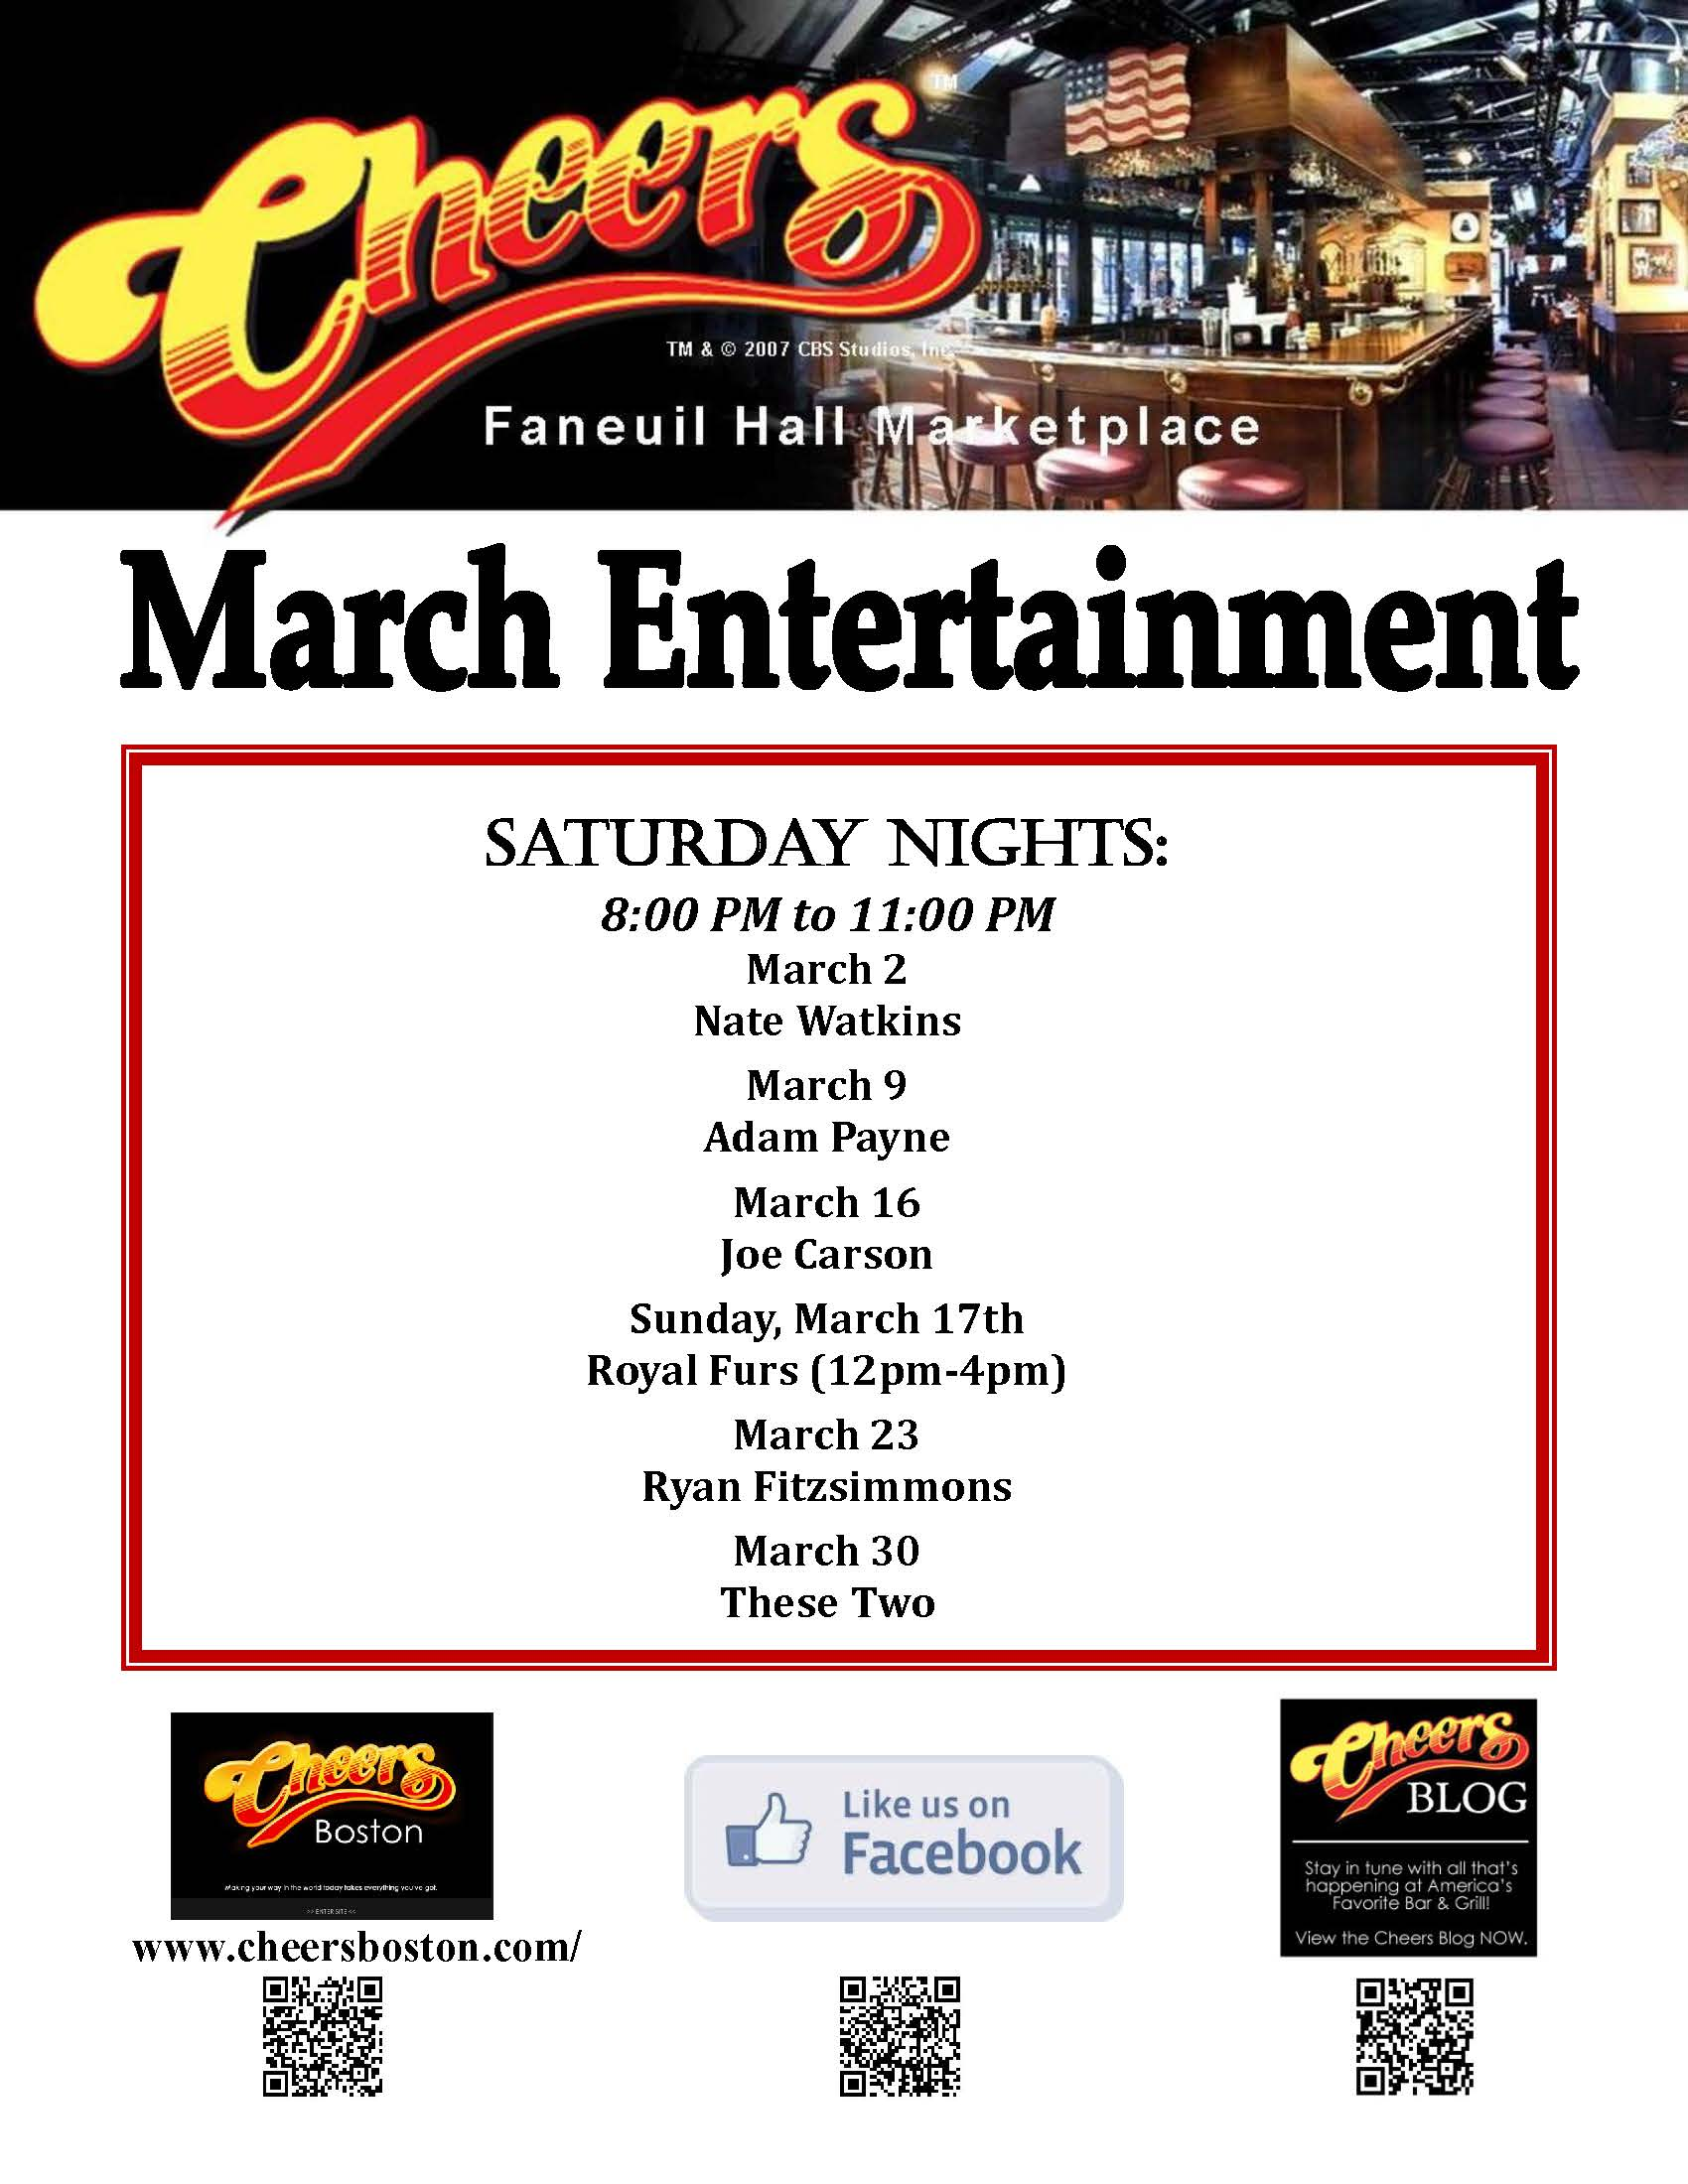 Join us for Live Entertainment @ Cheers Faneuil Hall